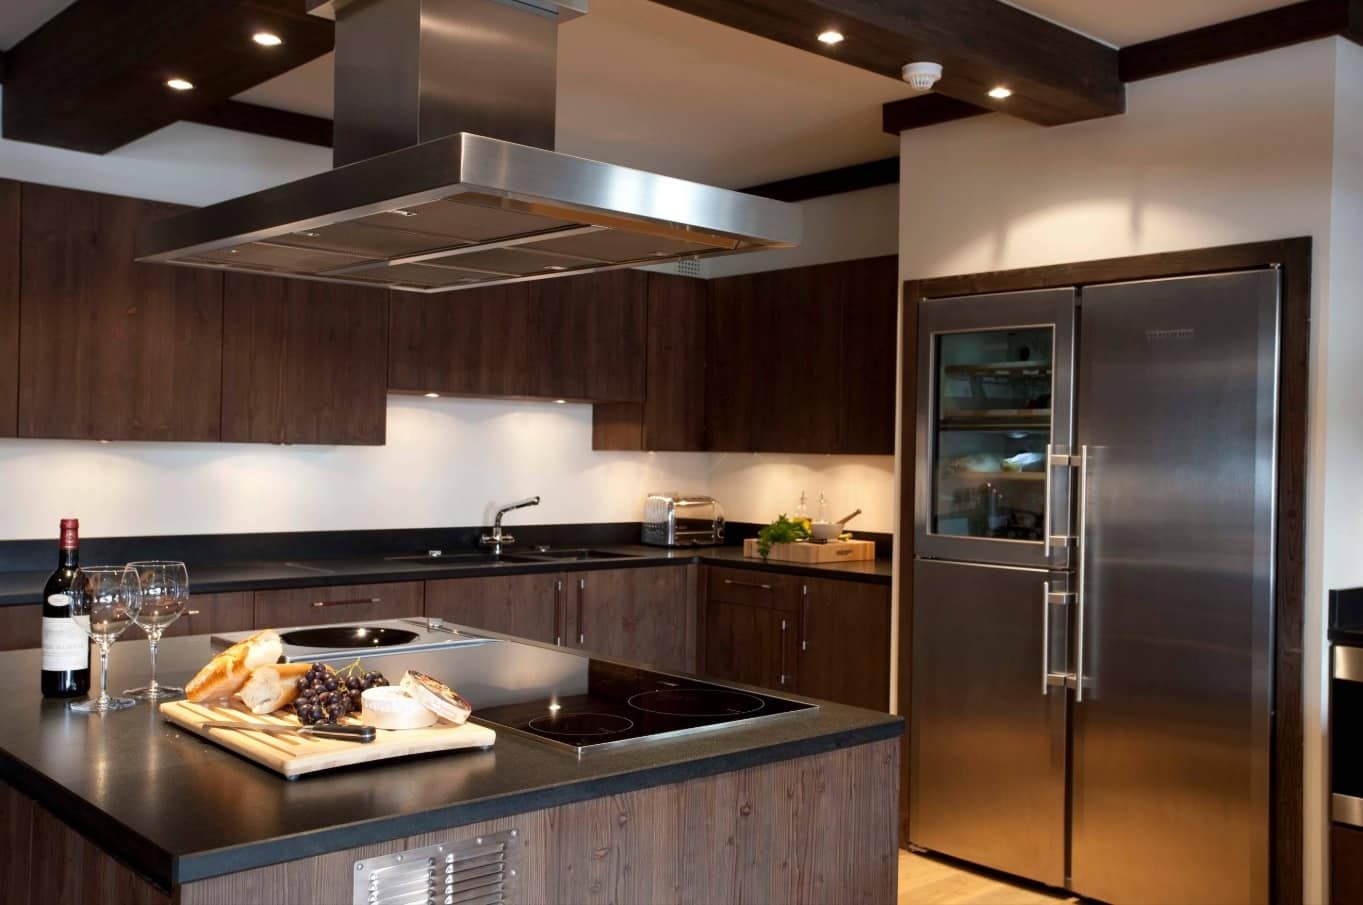 Chalet Style Interior Decoration: Relevance and Finishing Advice. Modern styled kitchen